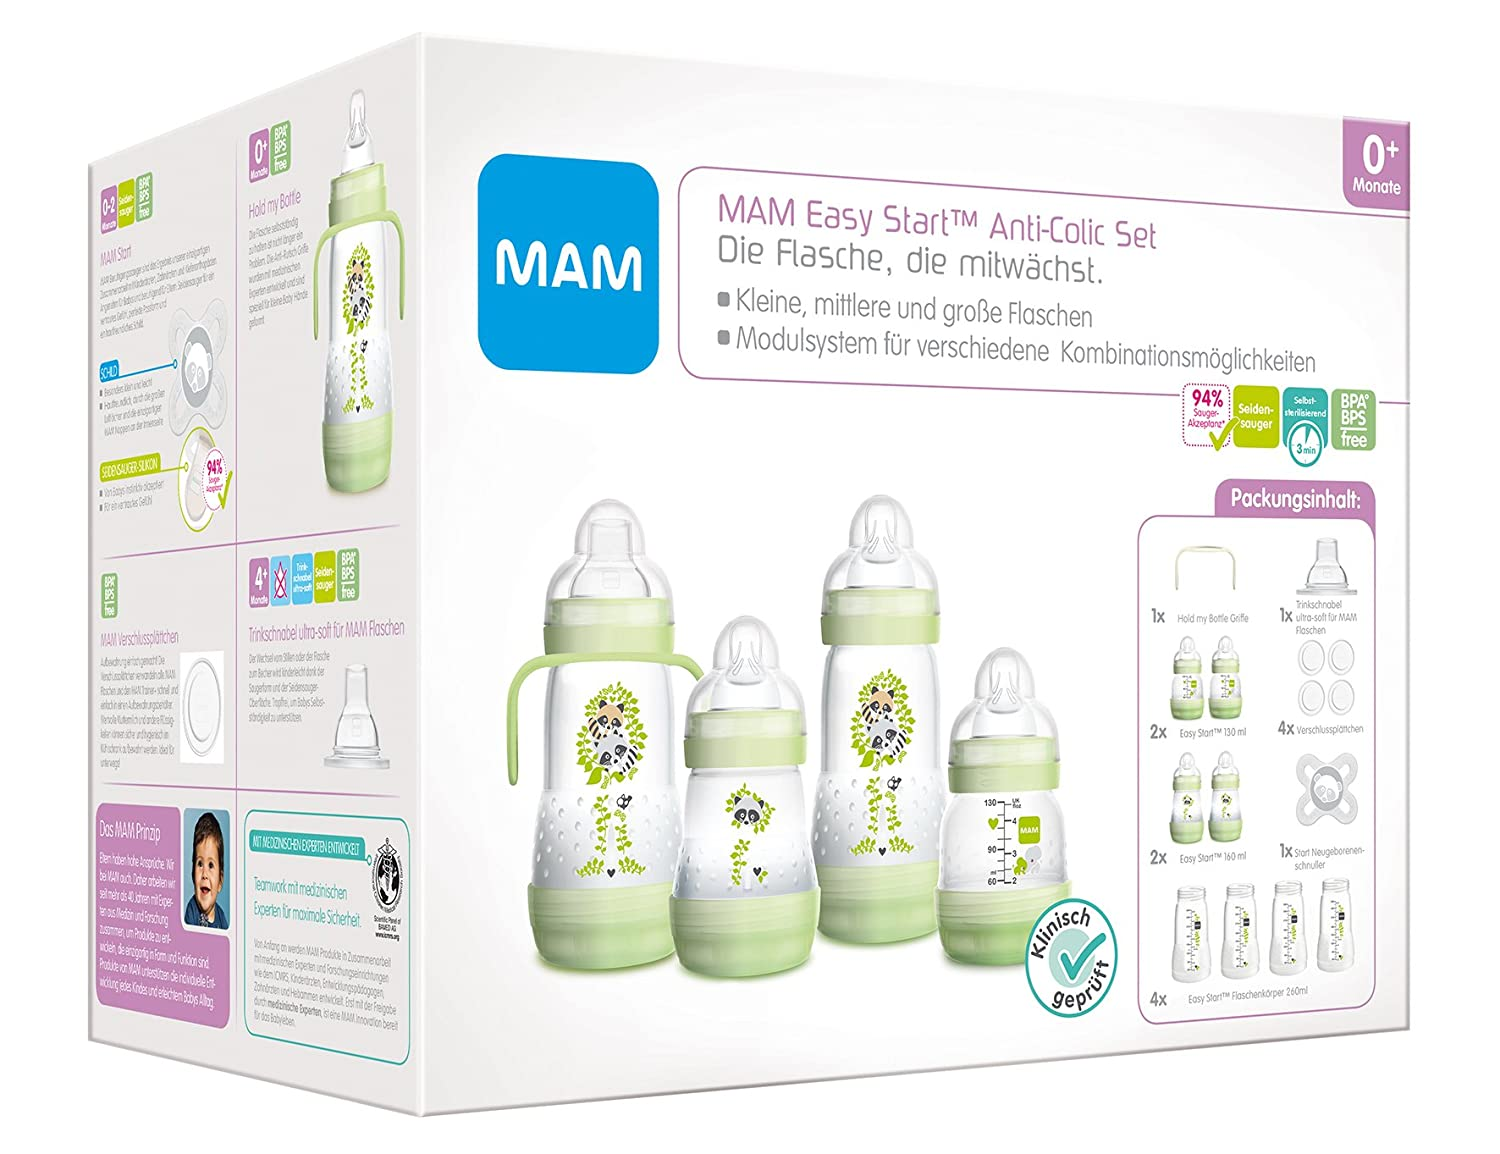 Mam Anti Colic Bottle Starter Set (Small) MAM Babyartikel 66298000